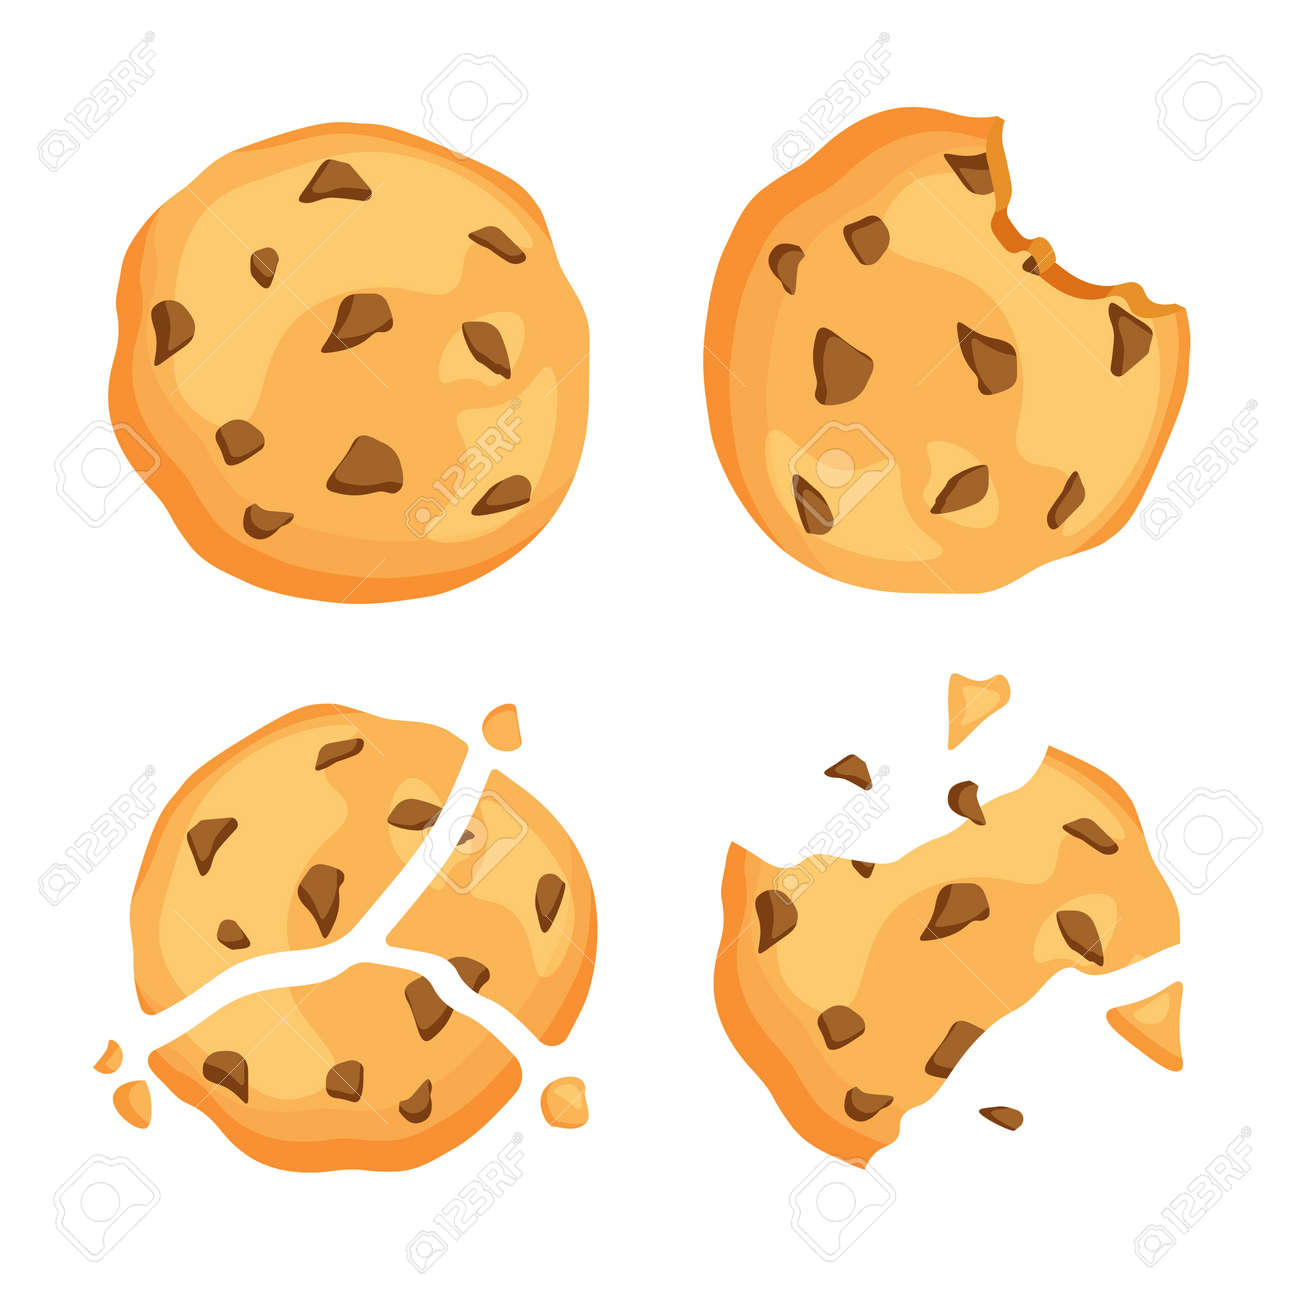 Traditional chip cookies with crumbs. Bitten and broken cookie with chocolate. Vector illustration isolated on white background. - 166402112